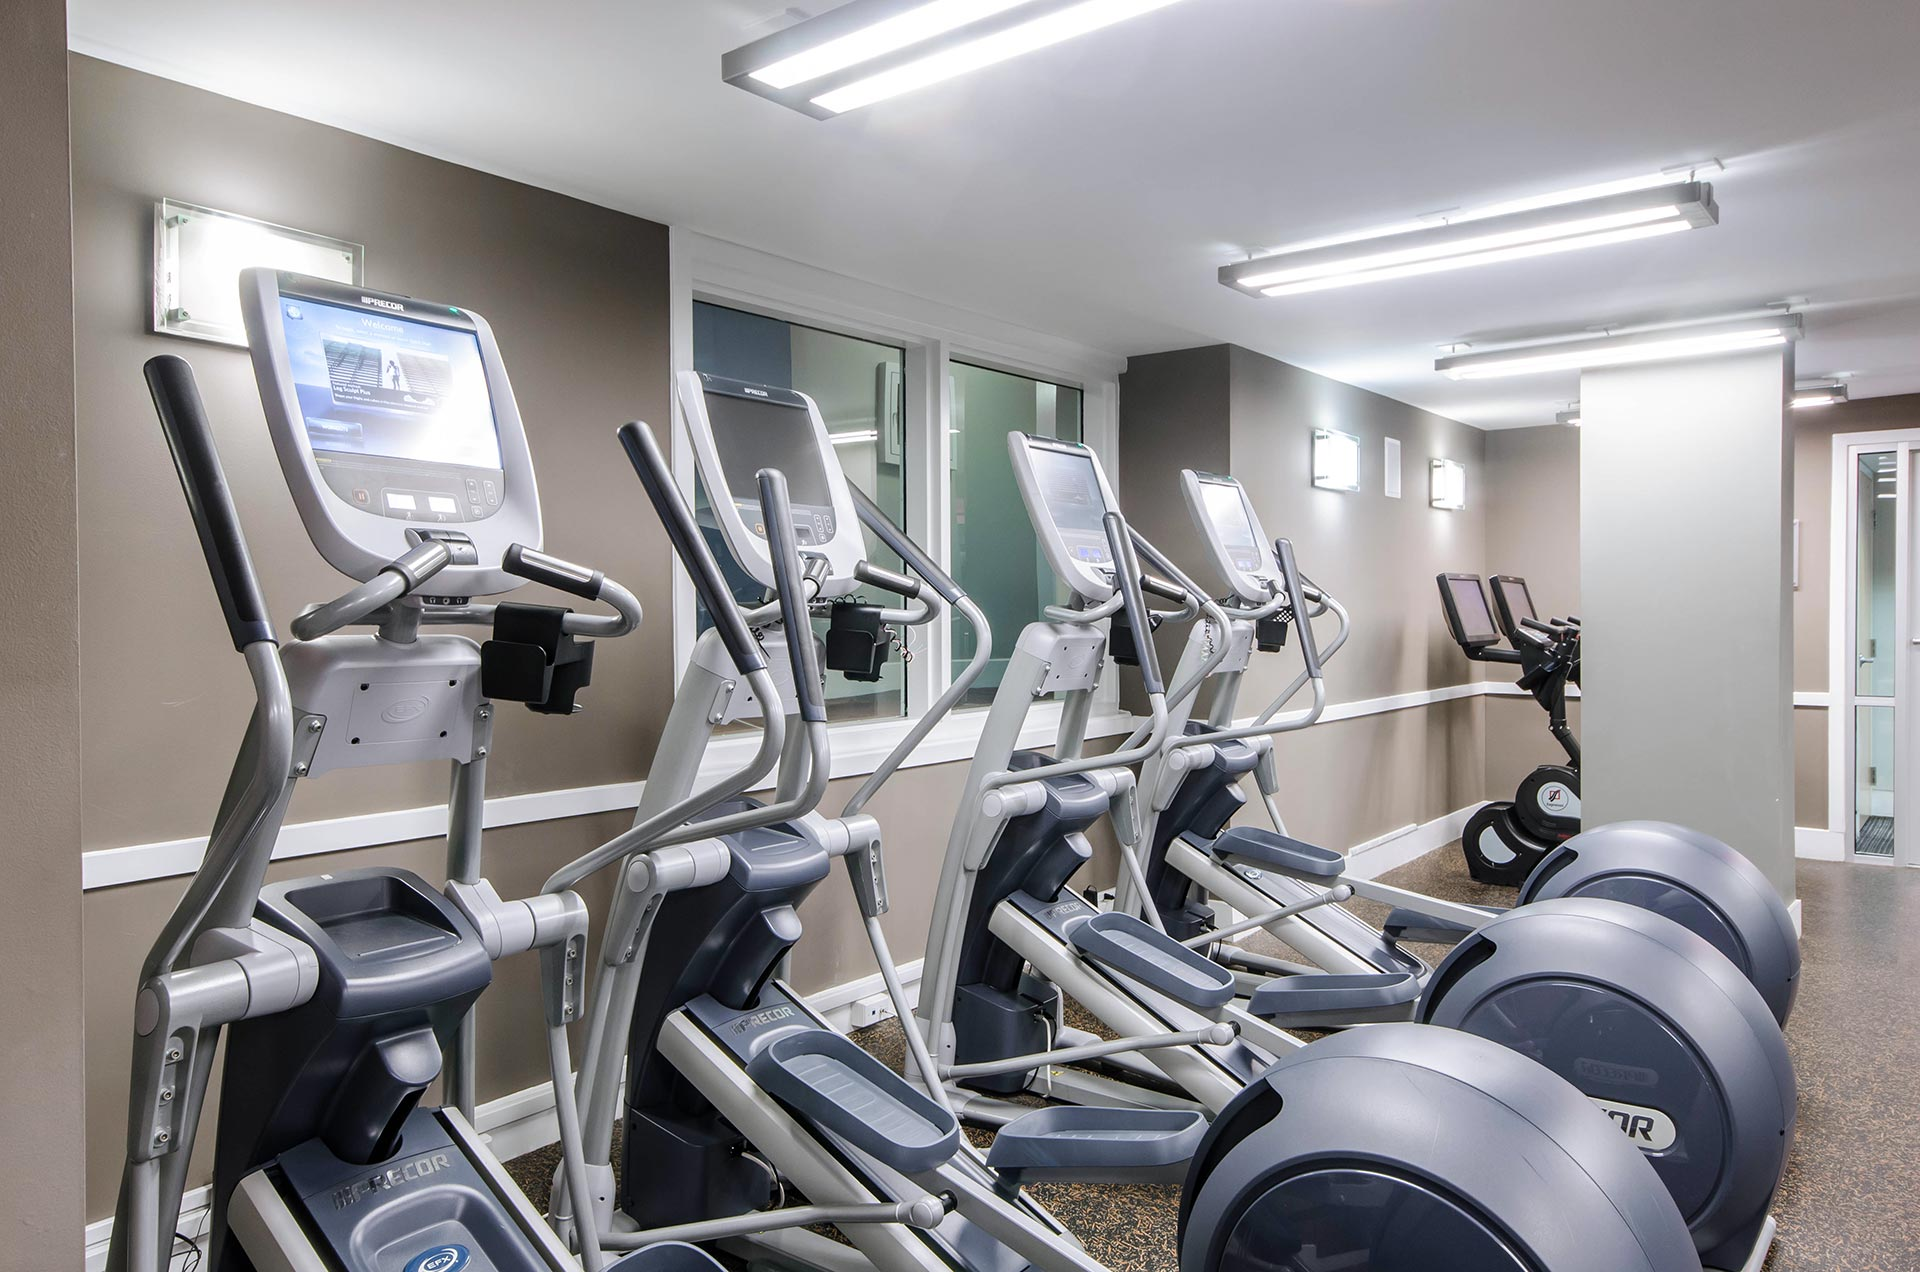 Closeup shot of elliptical machines in the fitness room